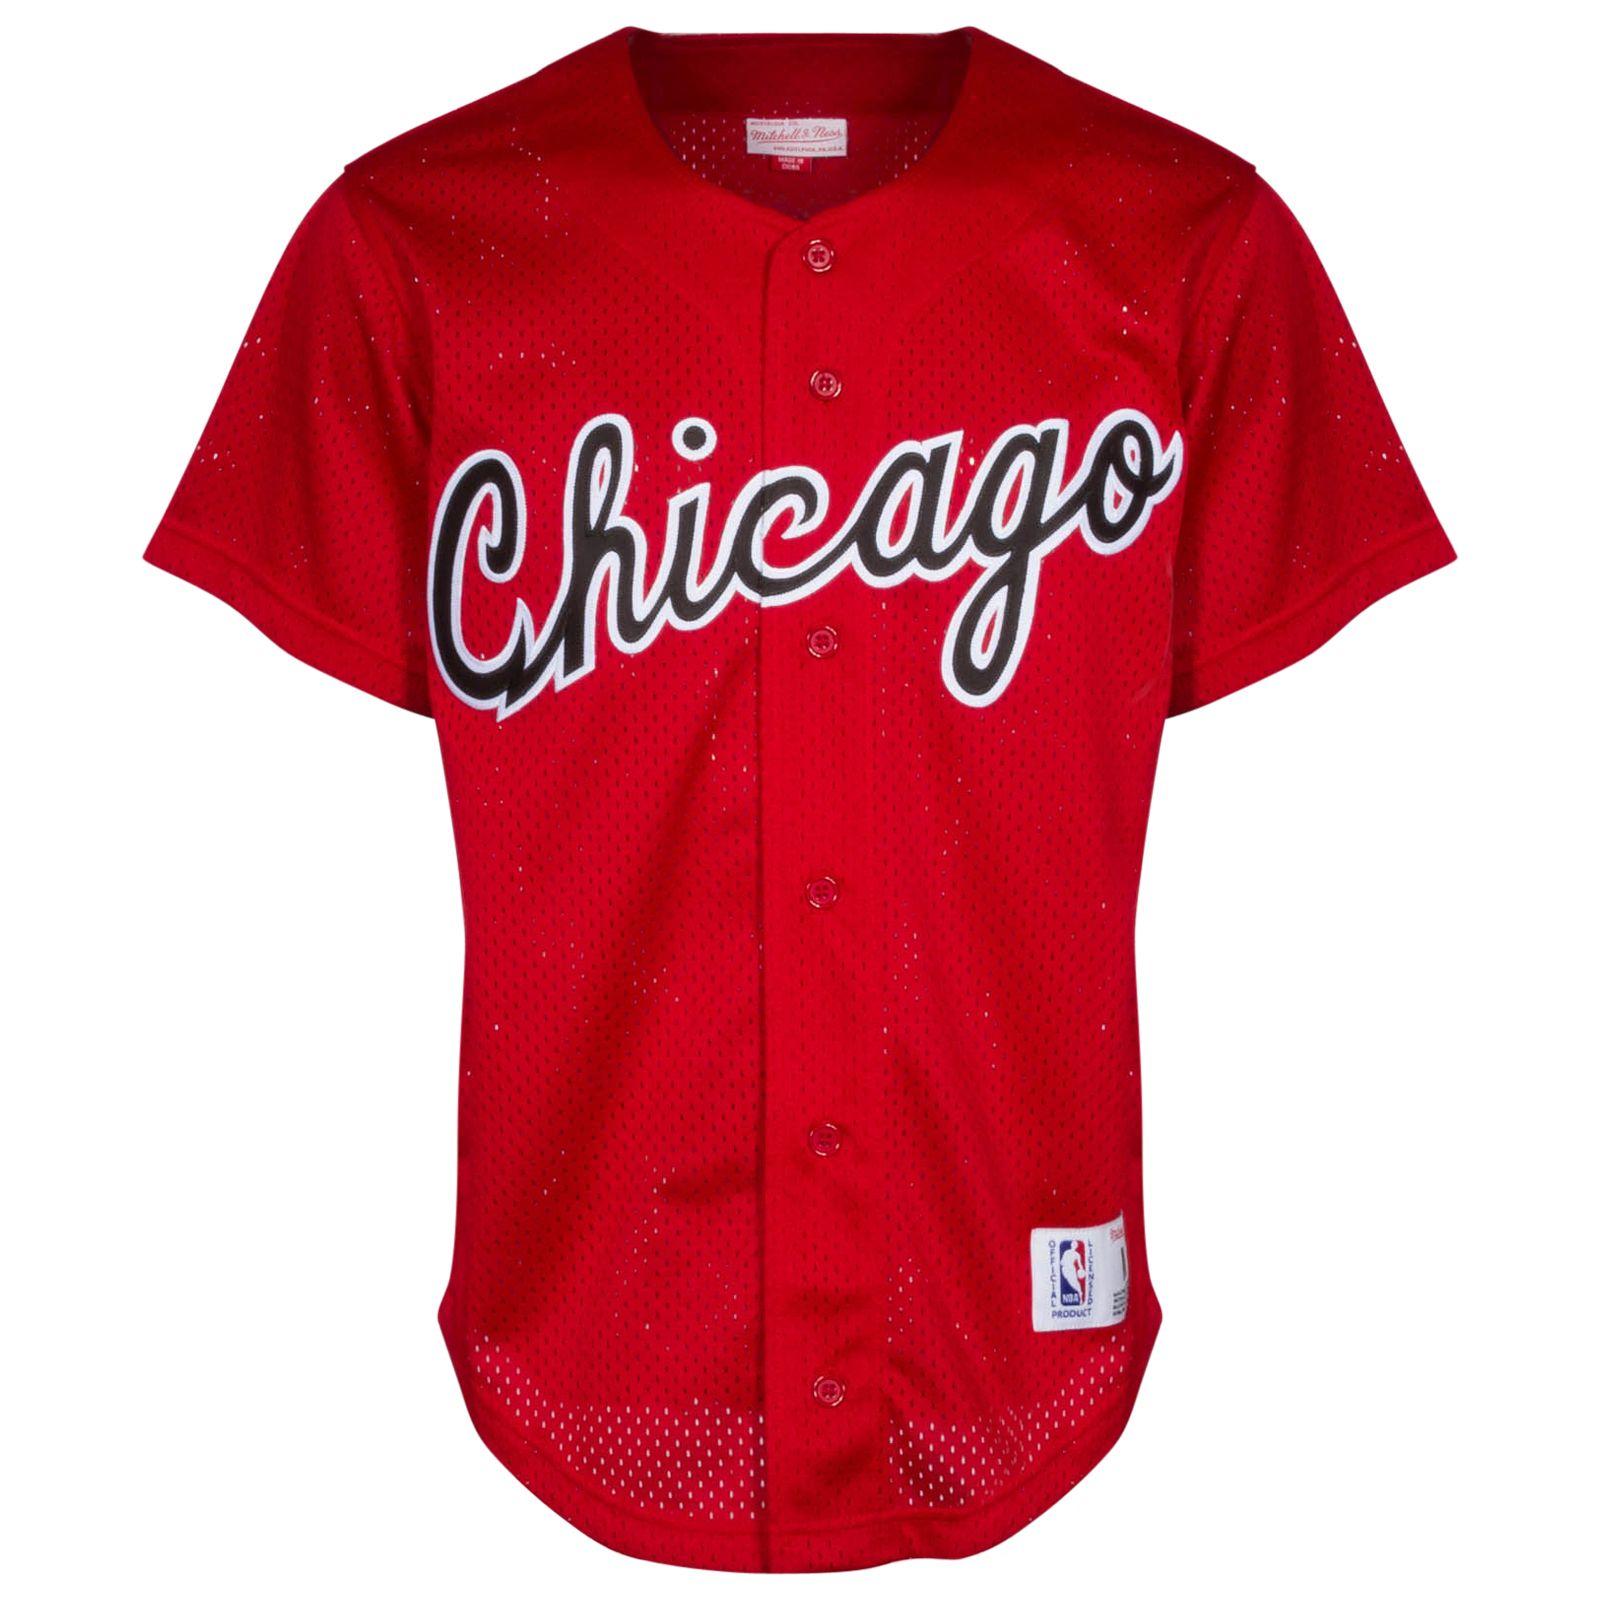 94fc3b2153a Chicago Bulls Men s Red Button-Up Baseball Jersey by Mitchell   Ness   Chicago  Bulls  ChicagoBulls